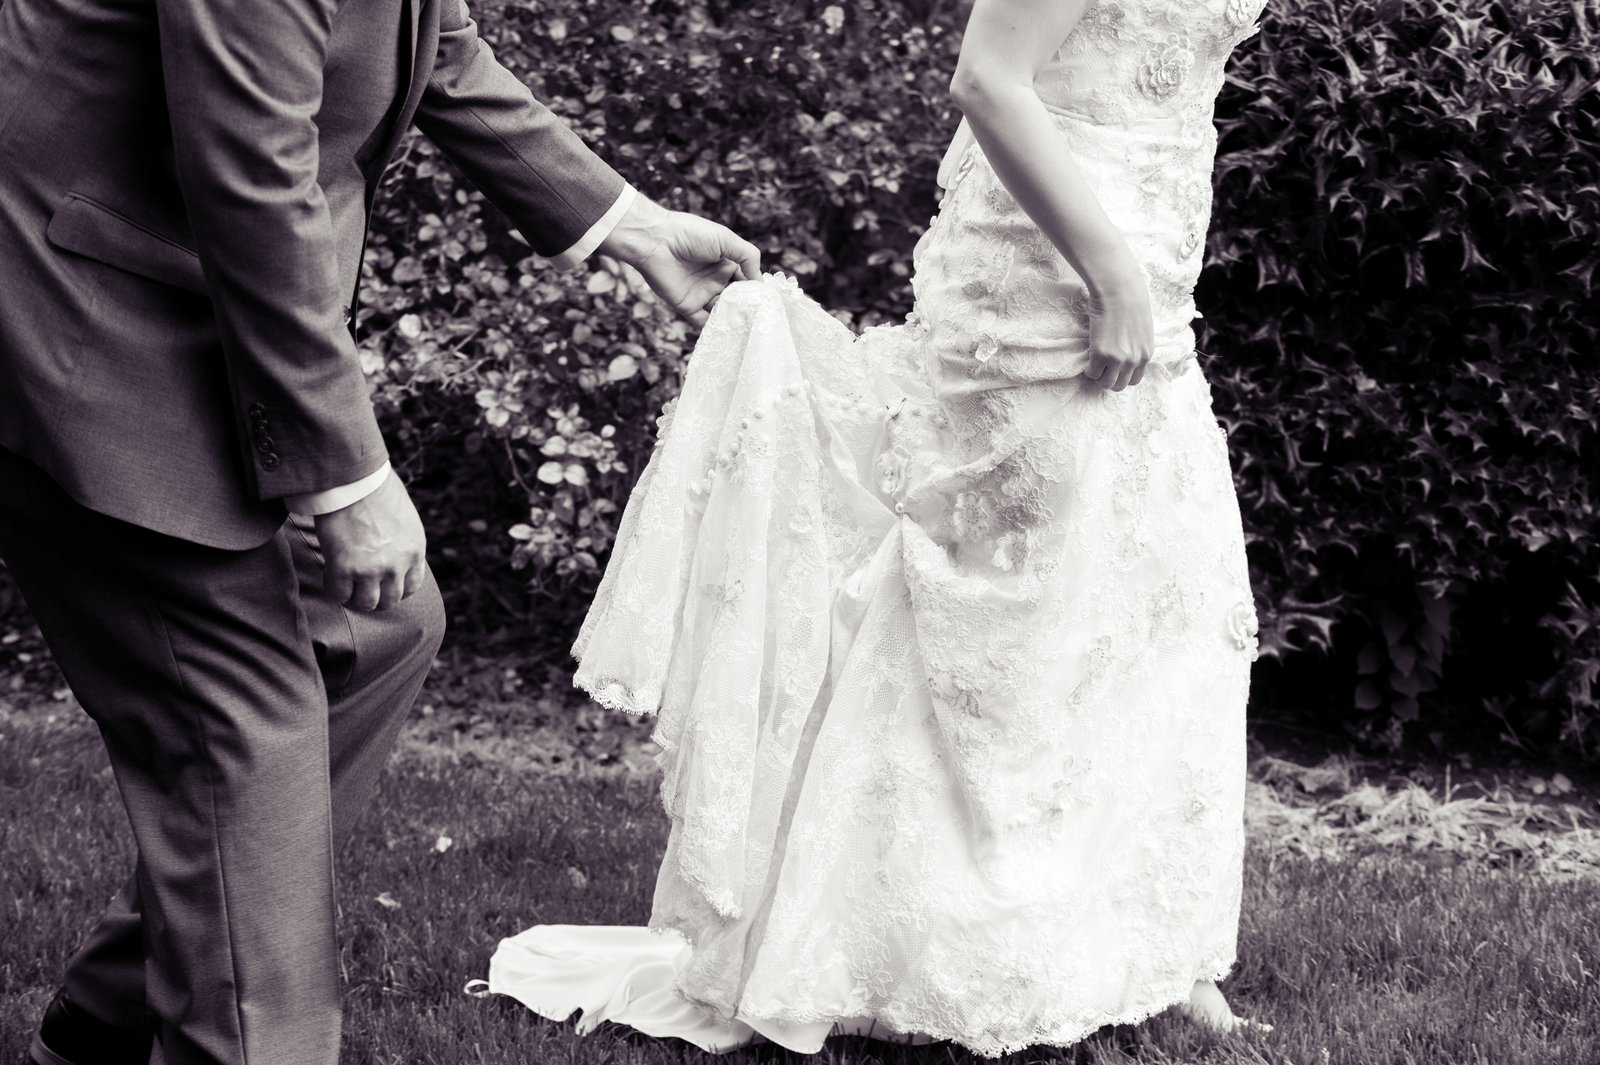 a groom holds bride's wedding dress